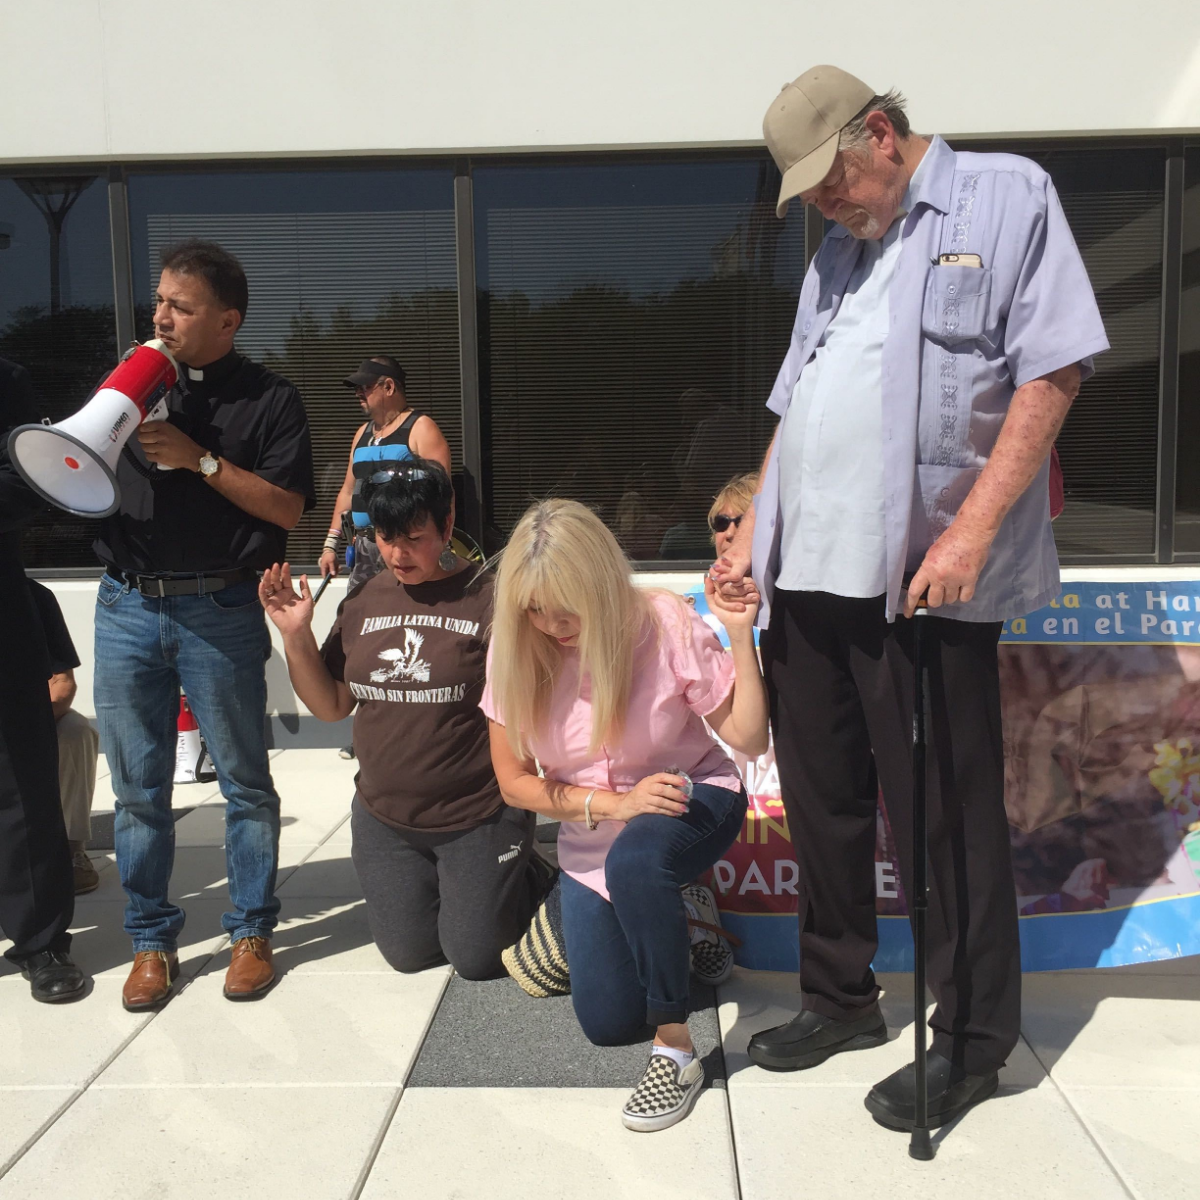 Protesters Accuse Koch Foods Of Retaliating Against Immigrant Workers